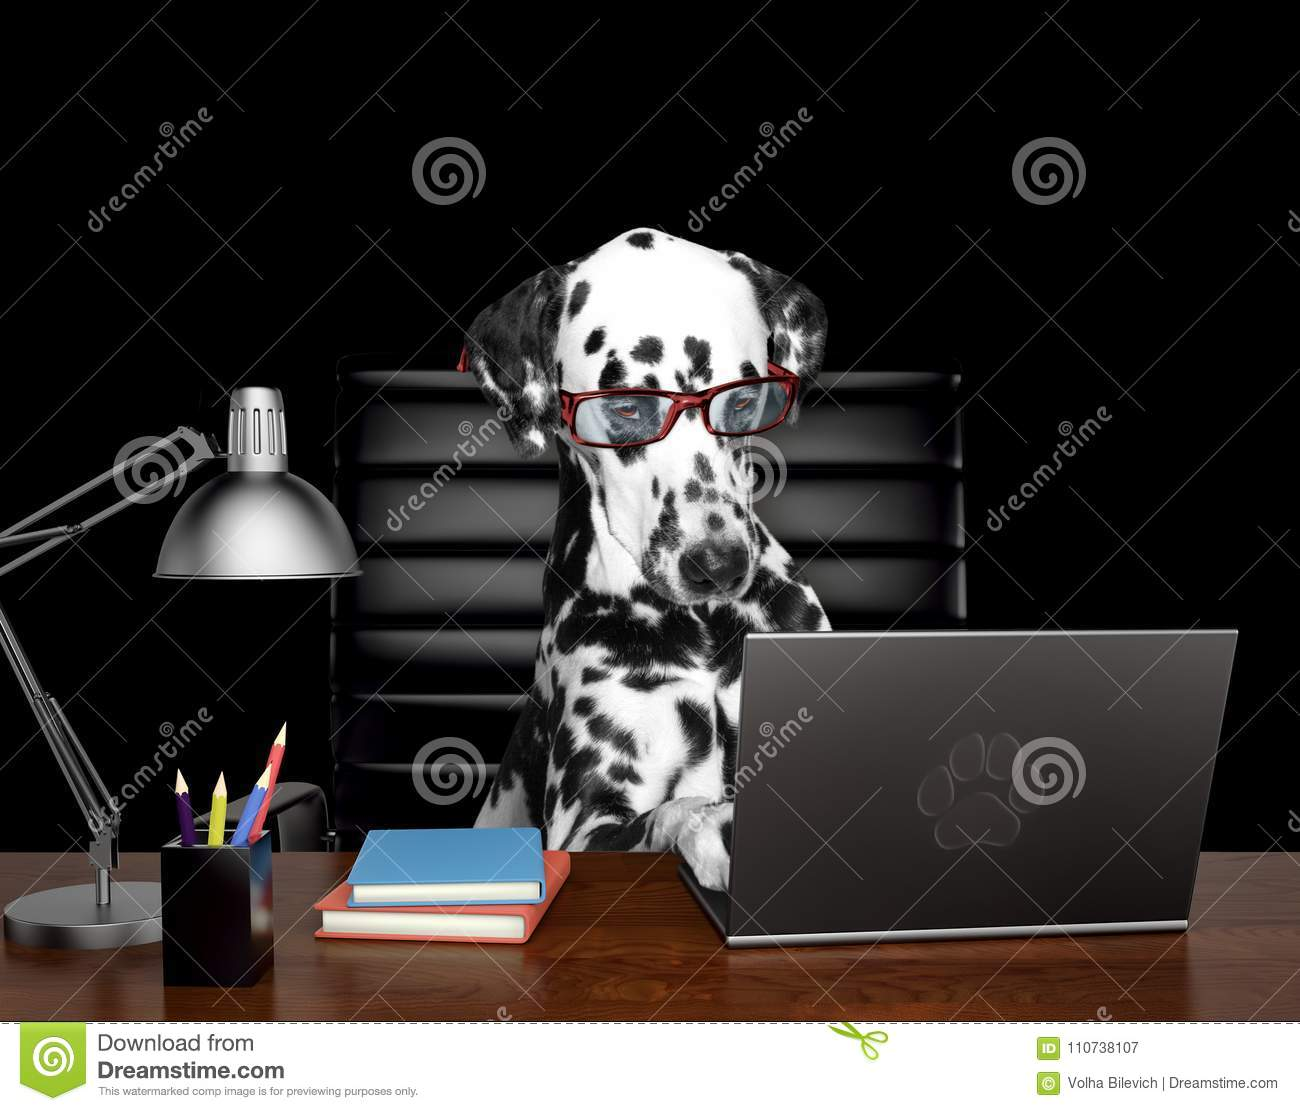 Dalmatian dog in glasses is doing some work on the computer. Isolated on black